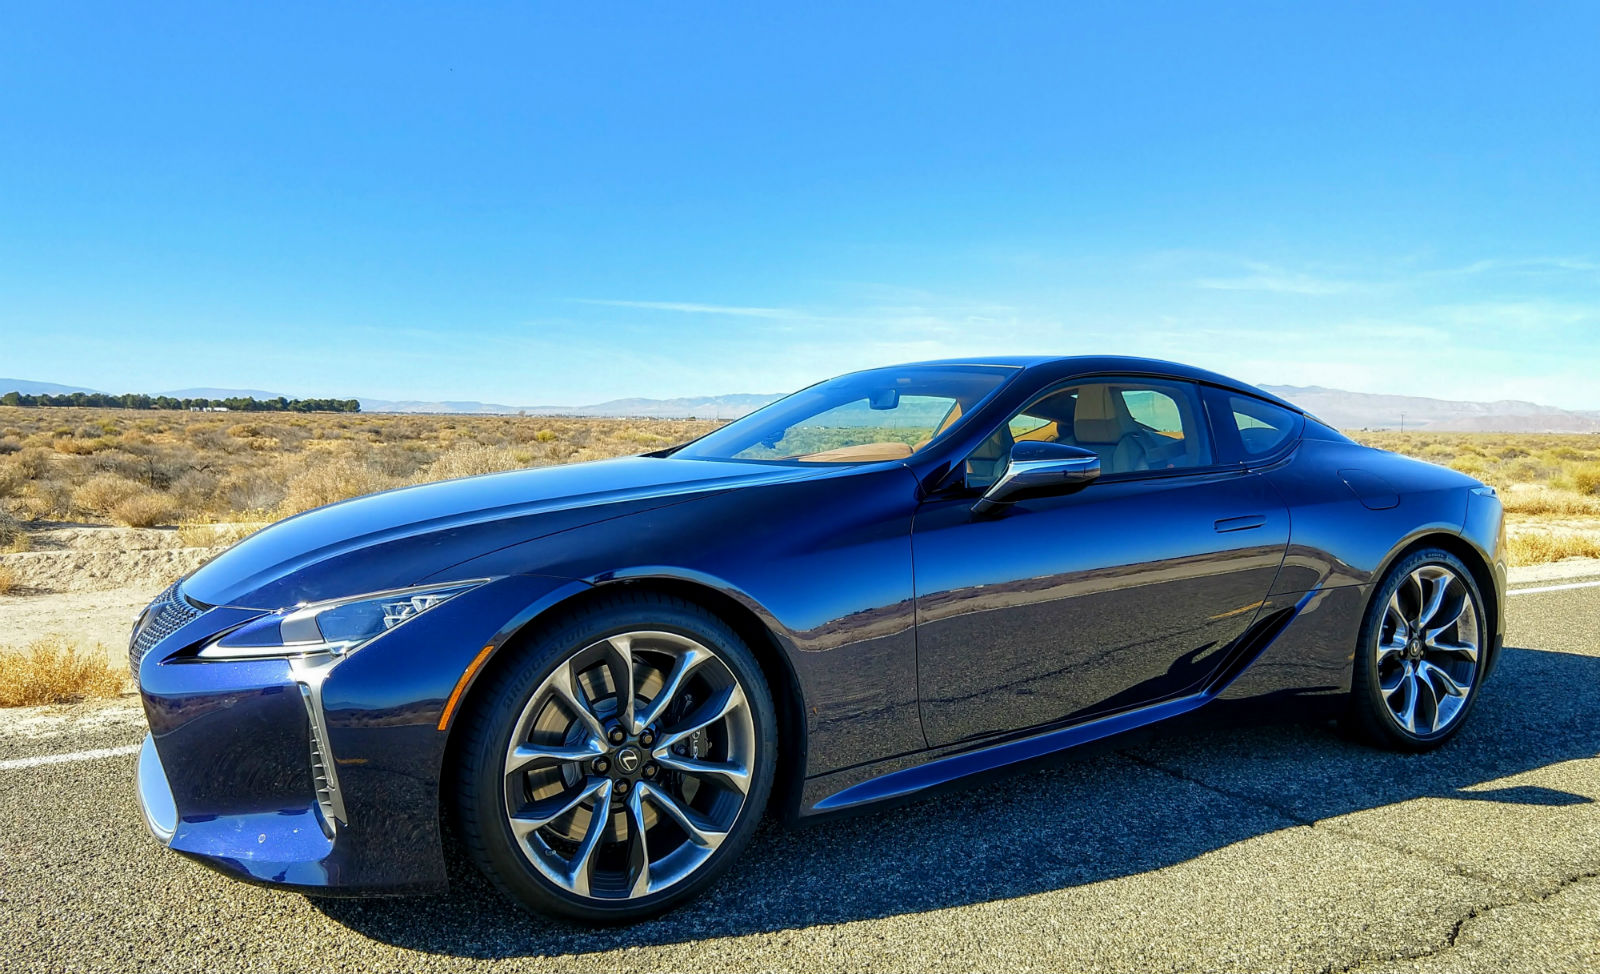 Vehicle Of The Year 2018 Lexus Lc 500 The Ignition Blog